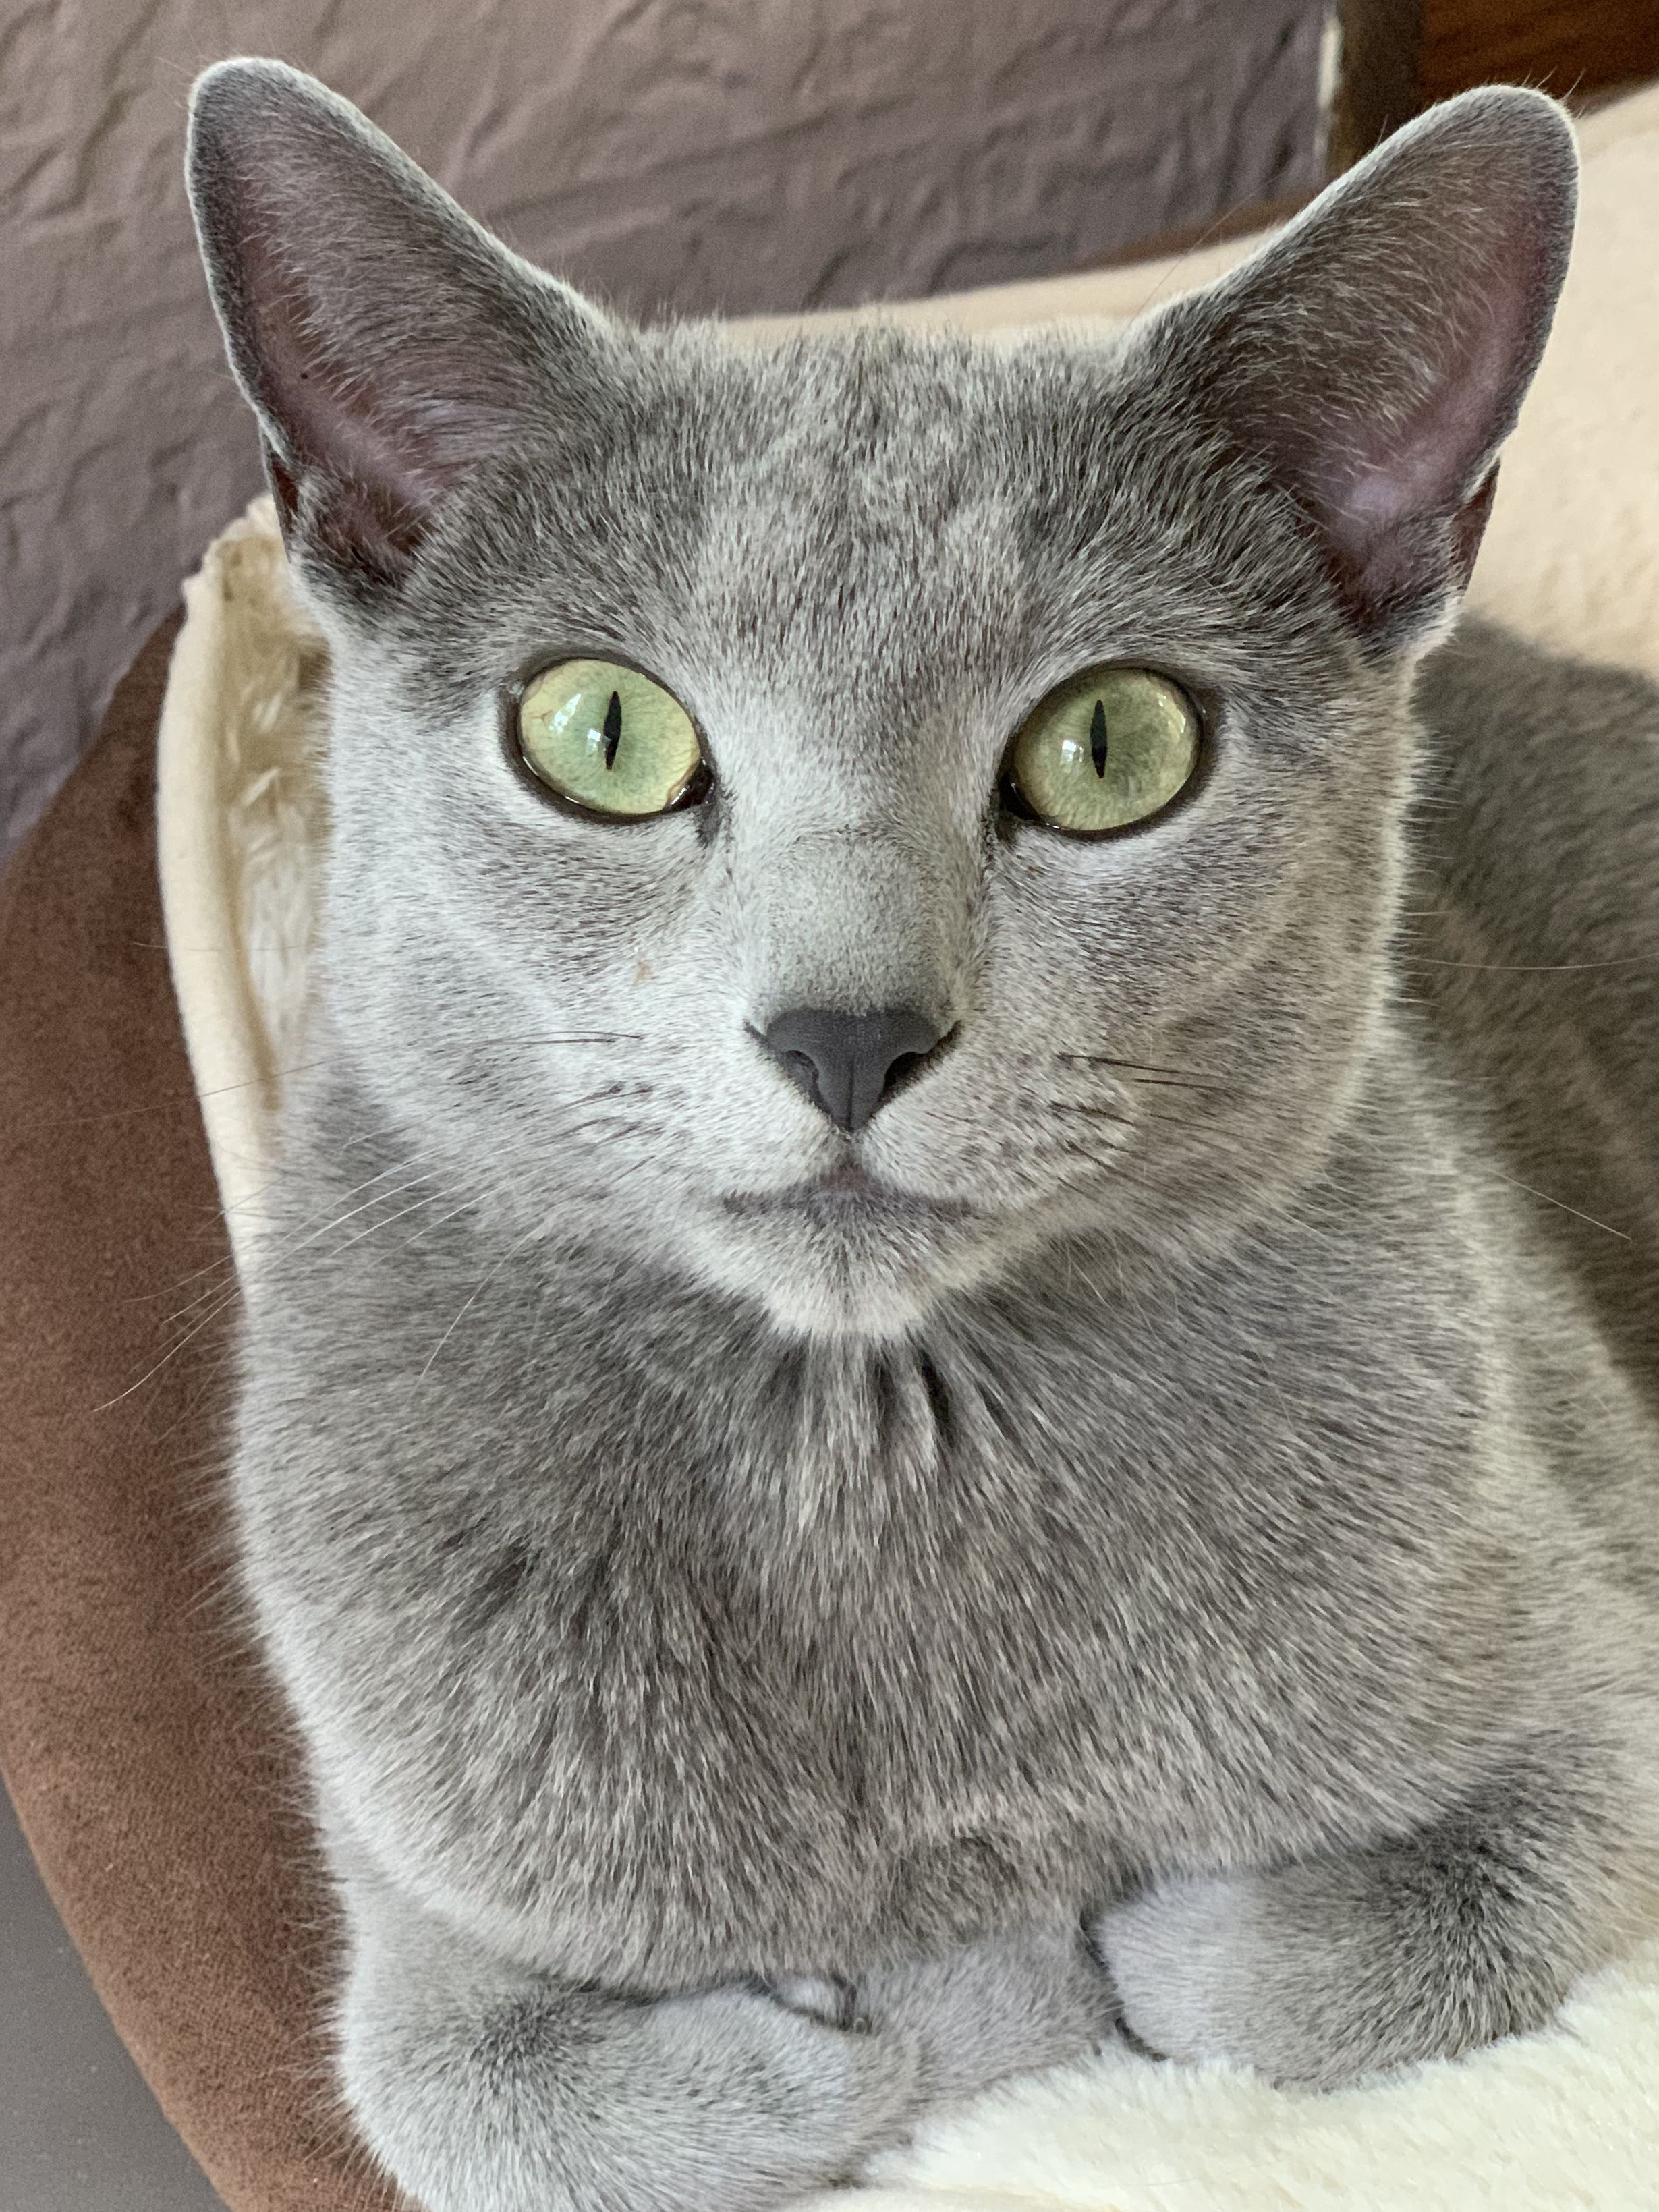 Pin By Ihunna On Cat In 2020 Russian Blue Cat Russian Blue Cute Cats